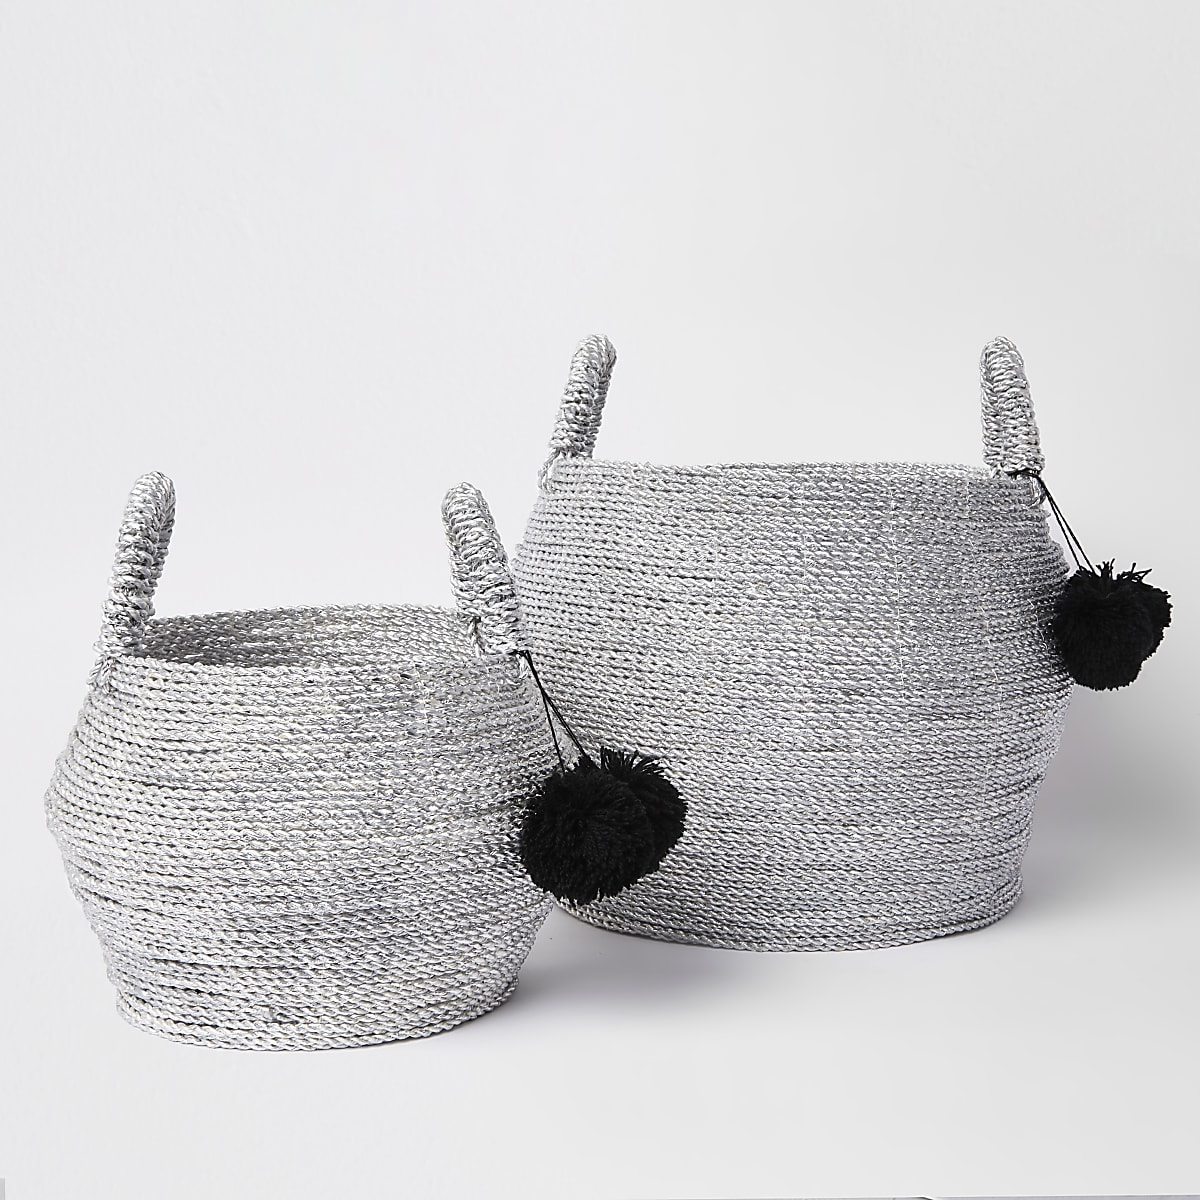 Silver set of two handwoven storage baskets